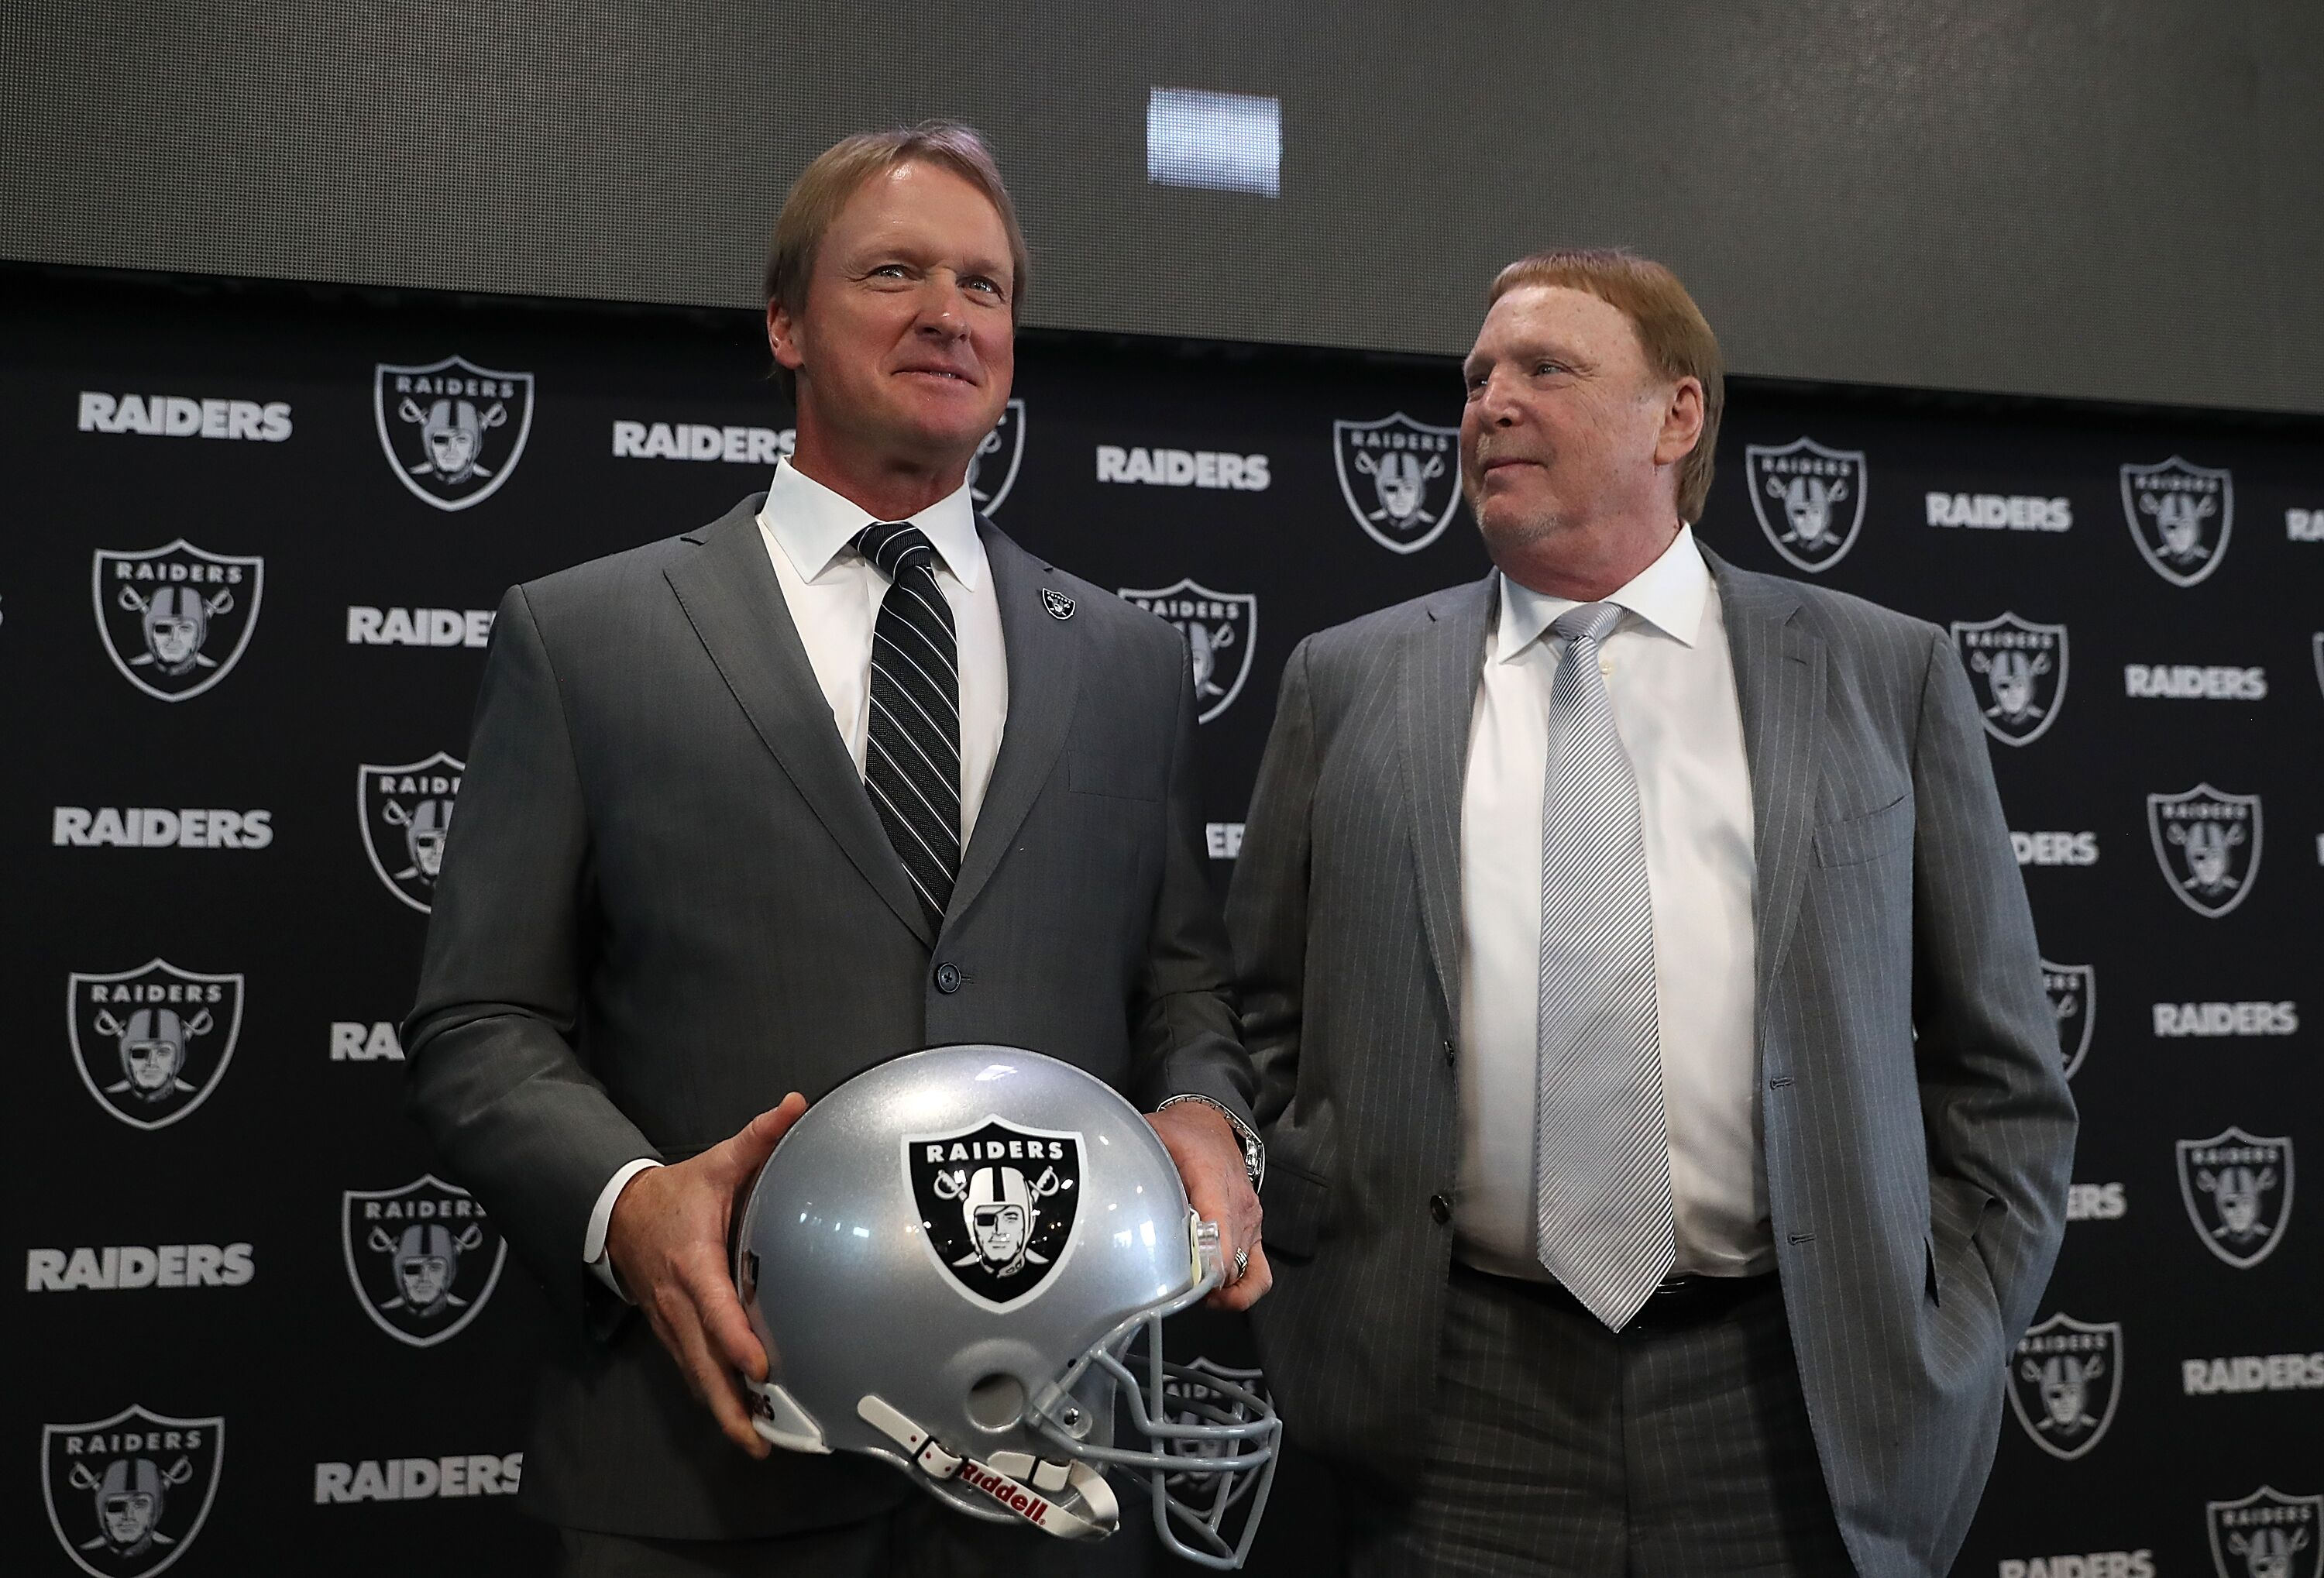 903066670-oakland-raiders-introduce-jon-gruden.jpg